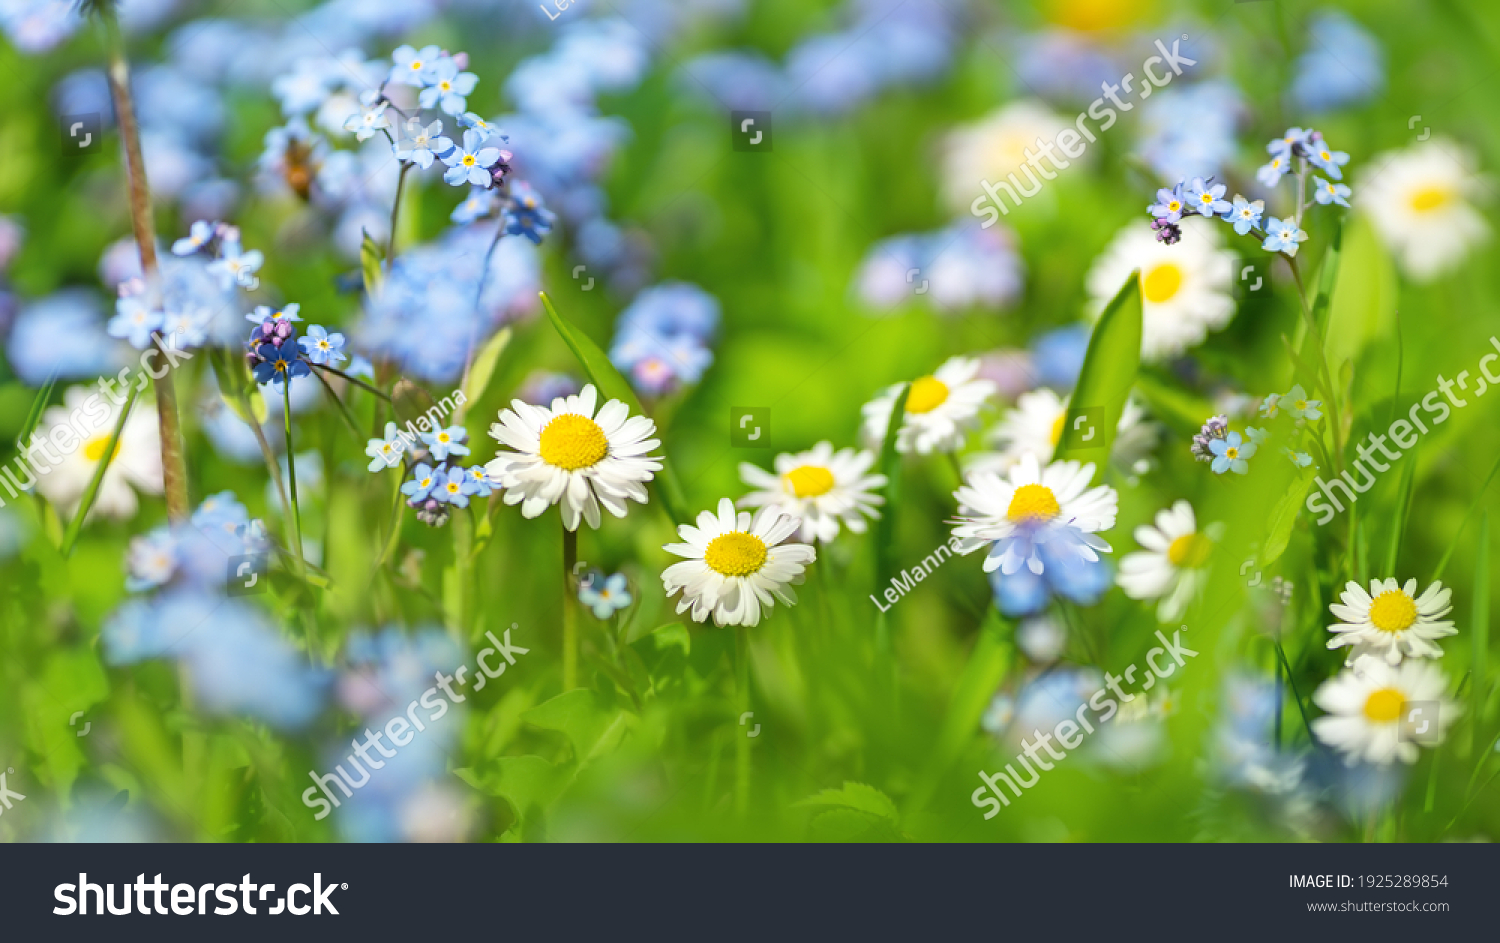 Meadow with lots of colorful spring flowers on sunny day. Nature floral background in early summer with fresh green grass. #1925289854